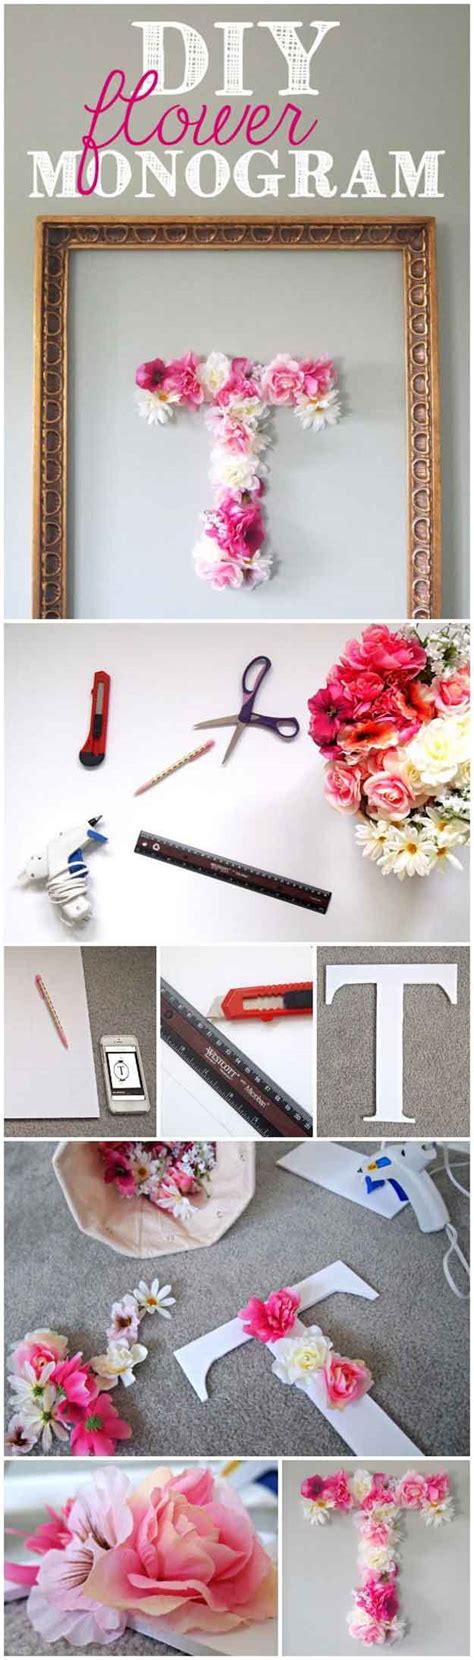 diy room decorations diy projects for bedroom diy ready